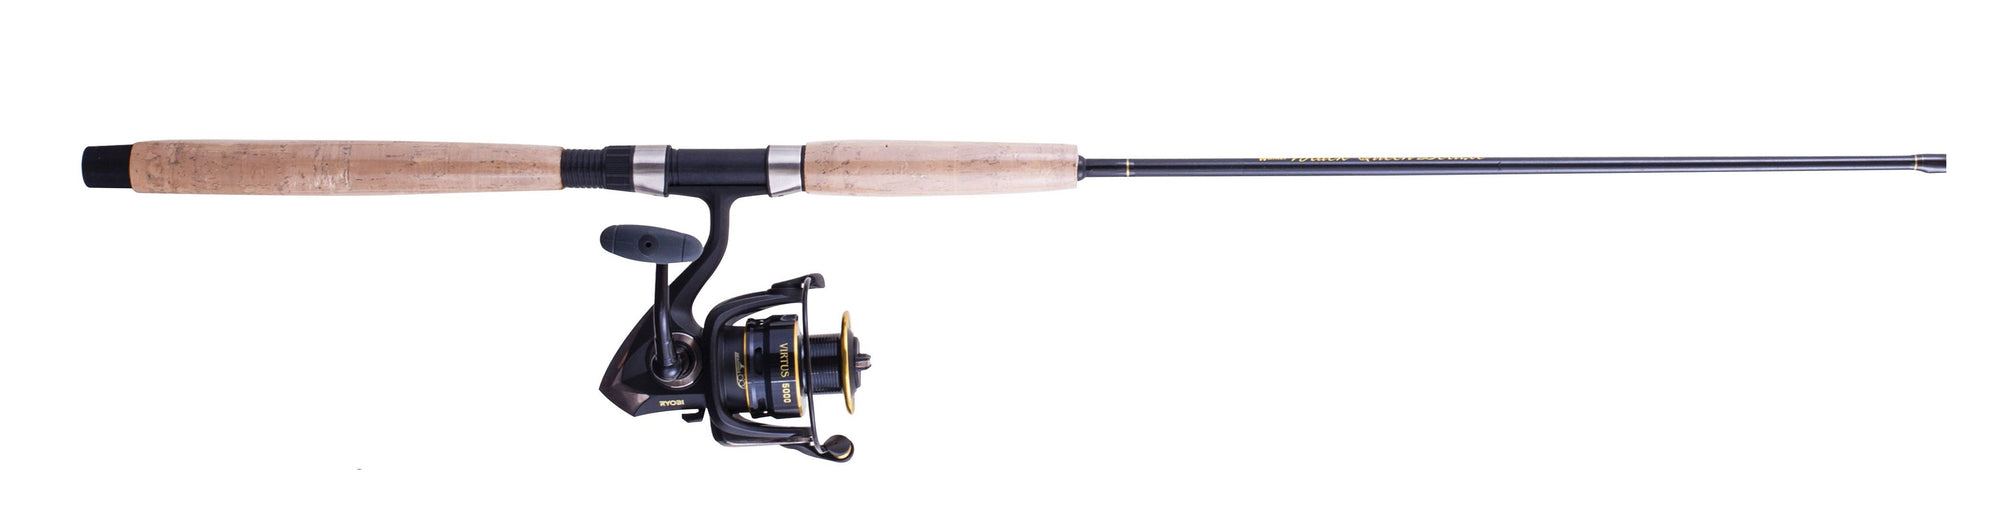 Jarvis Walker Solid Fibreglass Black Queen 8ft Rod and Ryobi Virtus 5000 Reel Combo